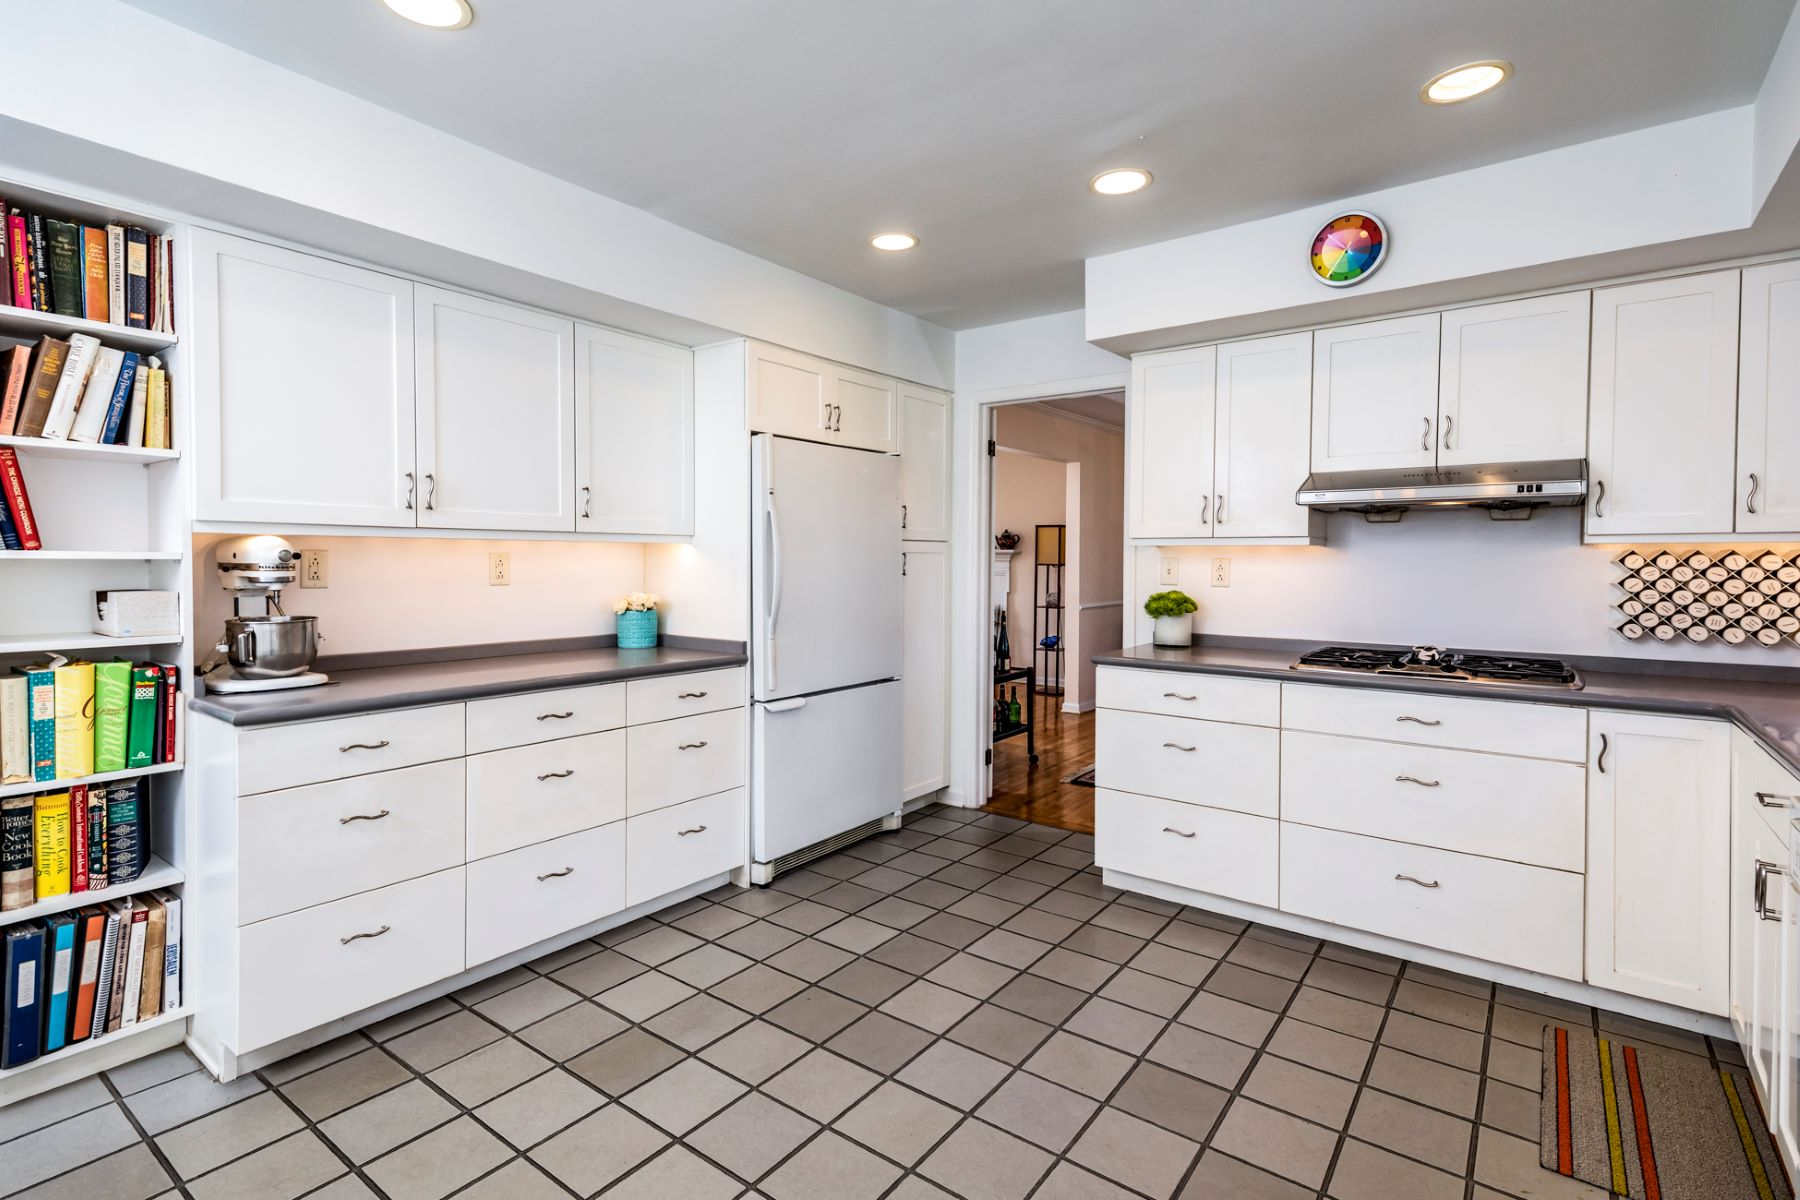 Additional photo for property listing at Wonderful Practicality and Comfort, Right in Town 46 Terhune Road, Princeton, New Jersey 08540 United States